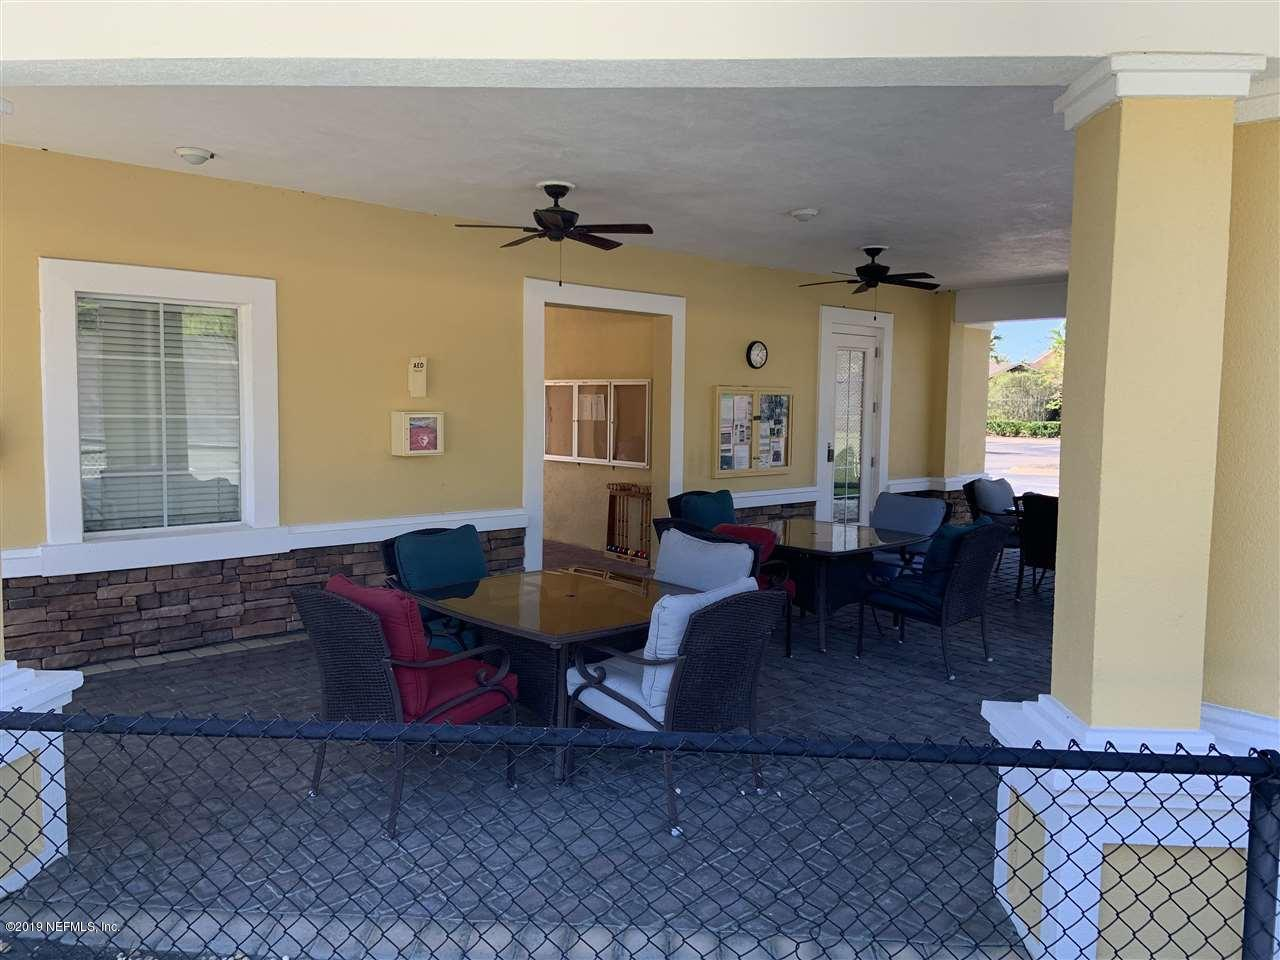 738 COPPERHEAD, ST AUGUSTINE, FLORIDA 32092, 3 Bedrooms Bedrooms, ,2 BathroomsBathrooms,For sale,COPPERHEAD,1023885